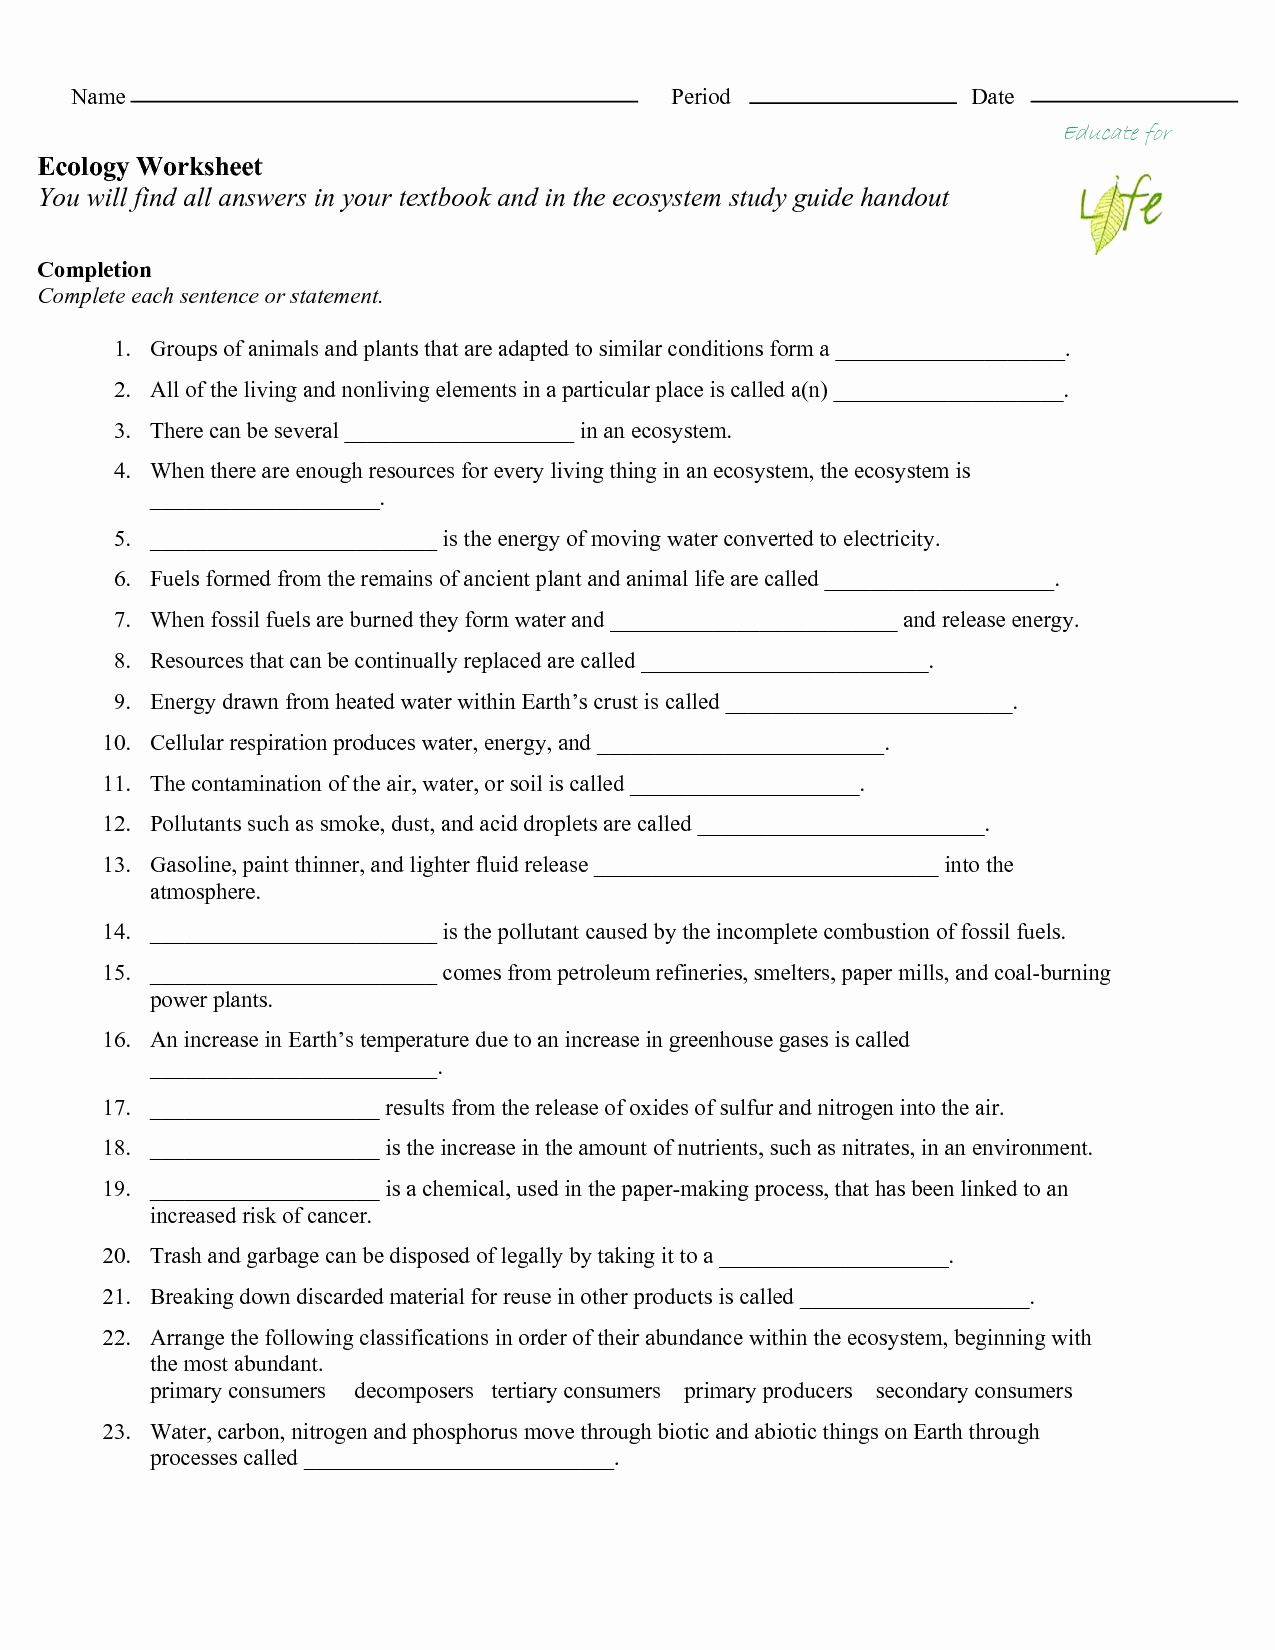 Cycles Worksheet Answer Key Inspirational 17 Best Of Nitrogen Cycle Worksheet Middle School